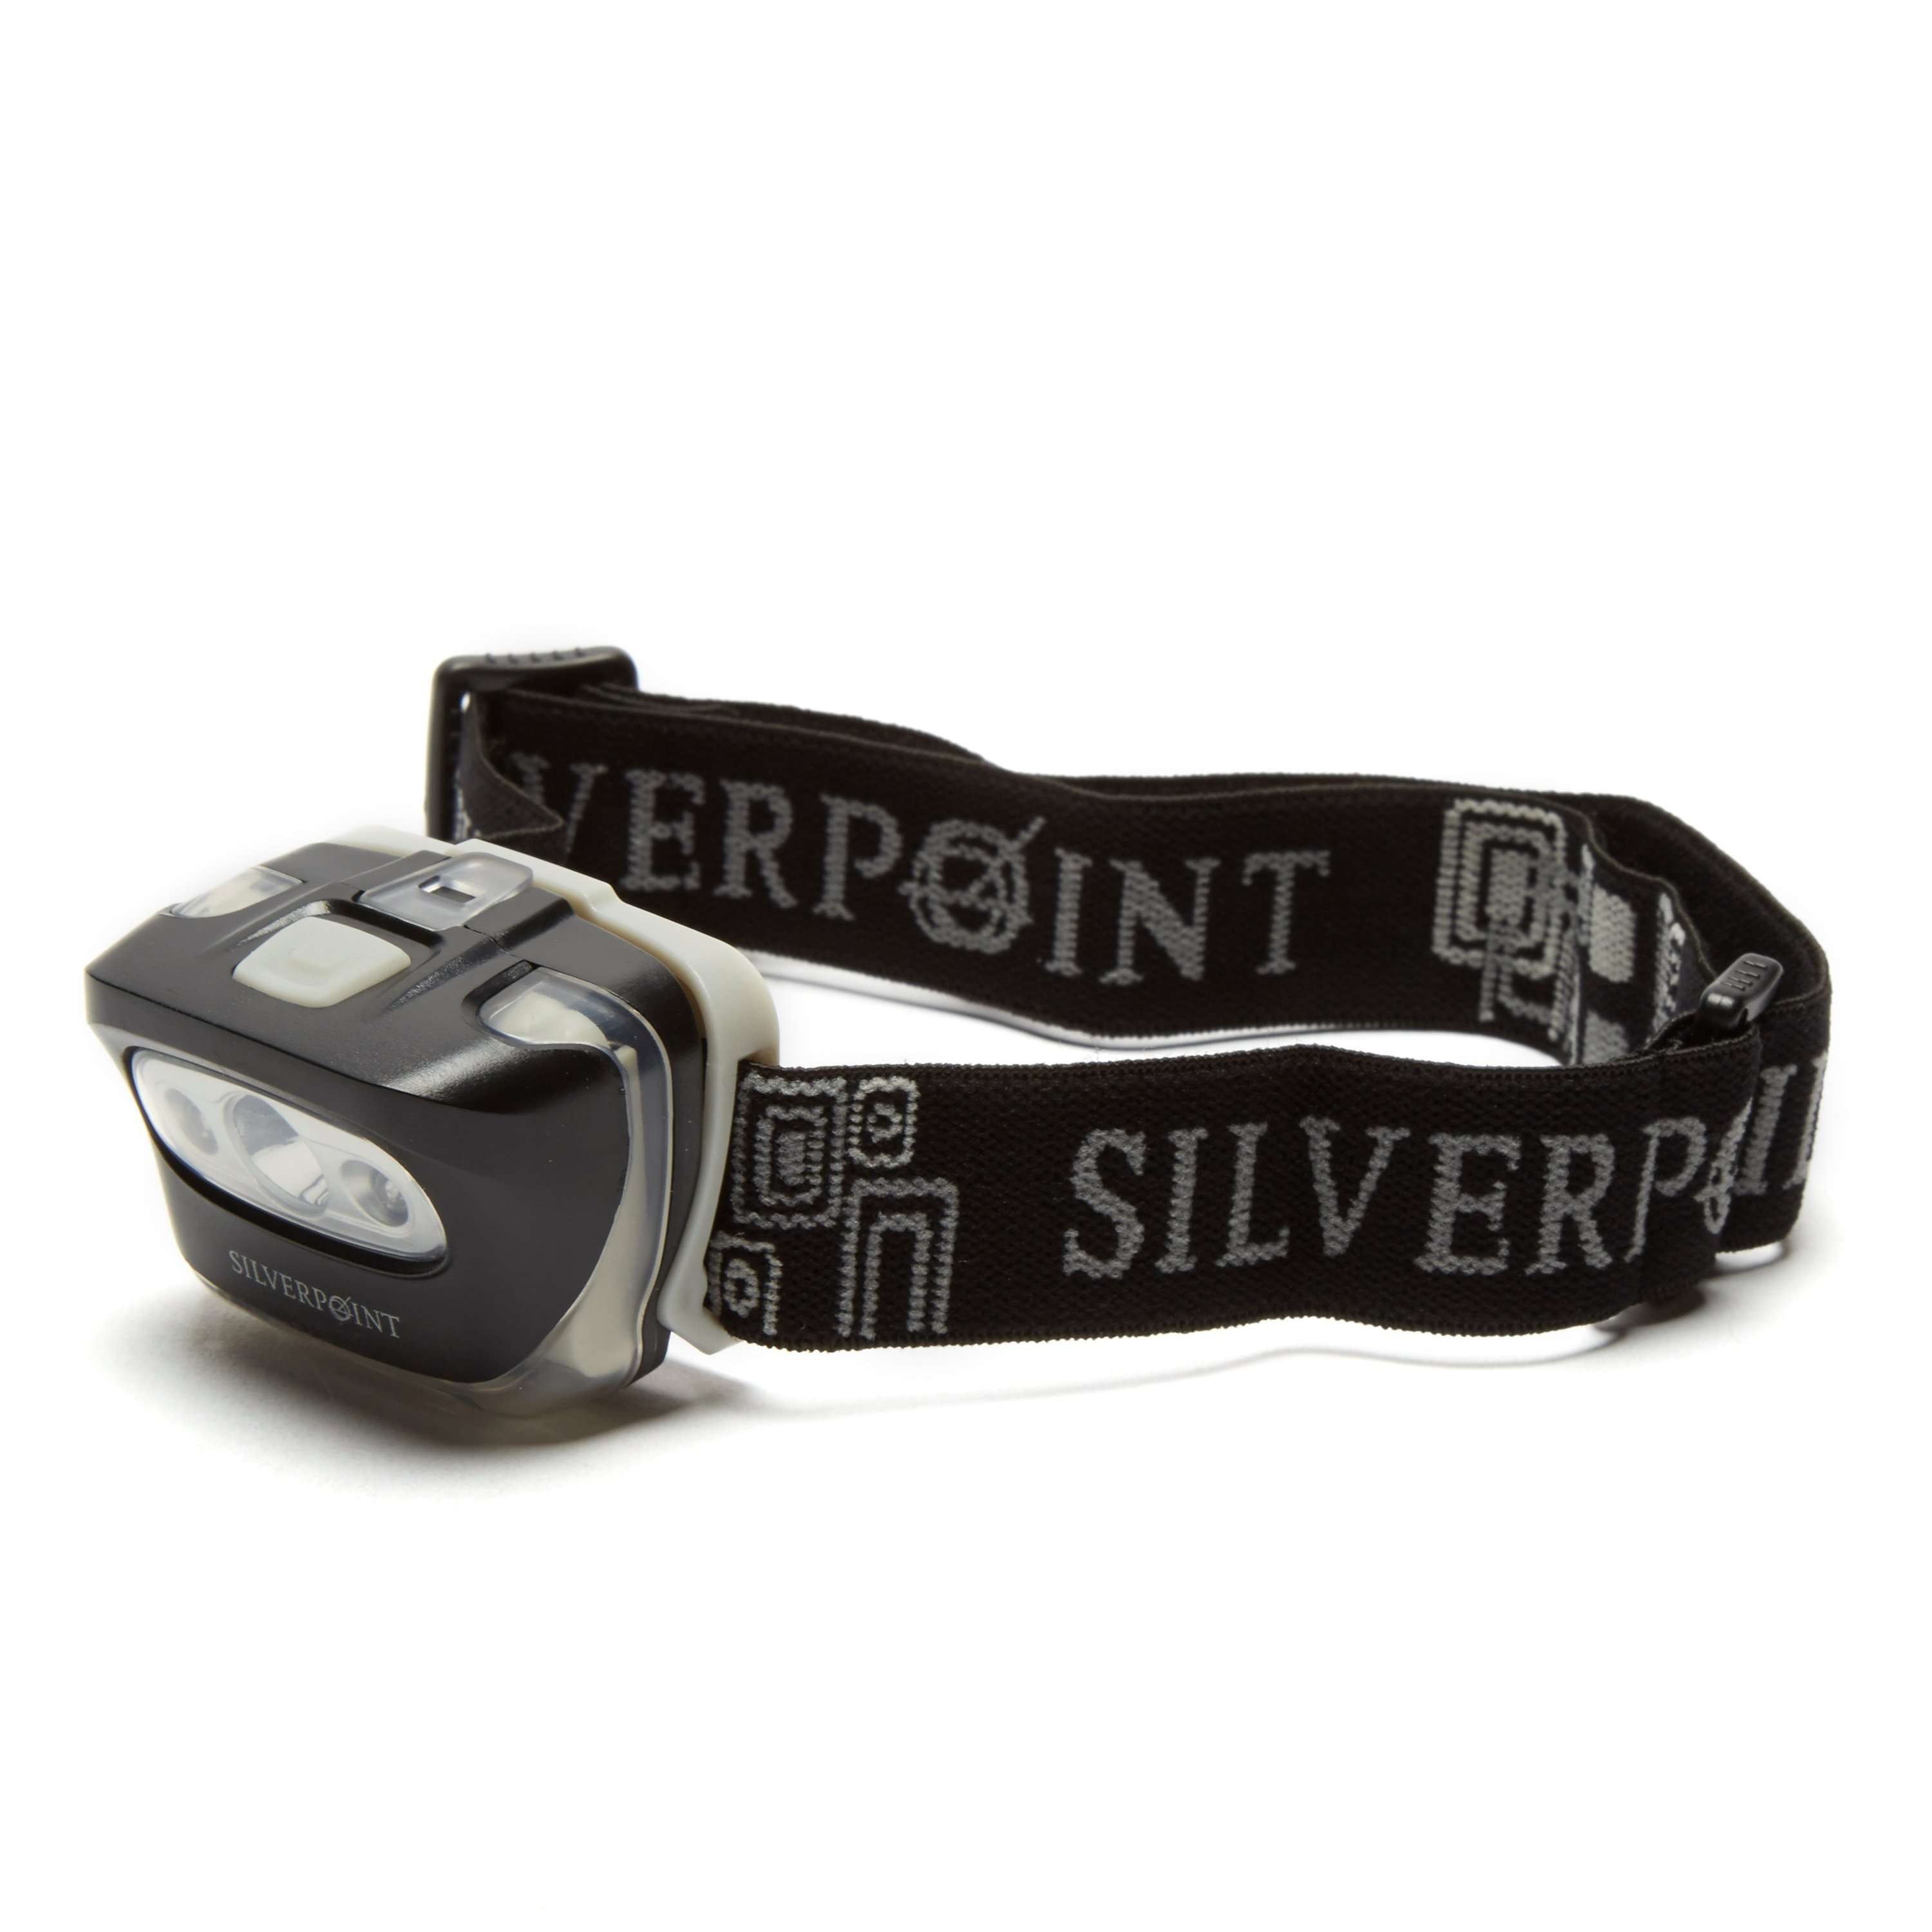 SILVERPOINT Guide XL95 Head Torch